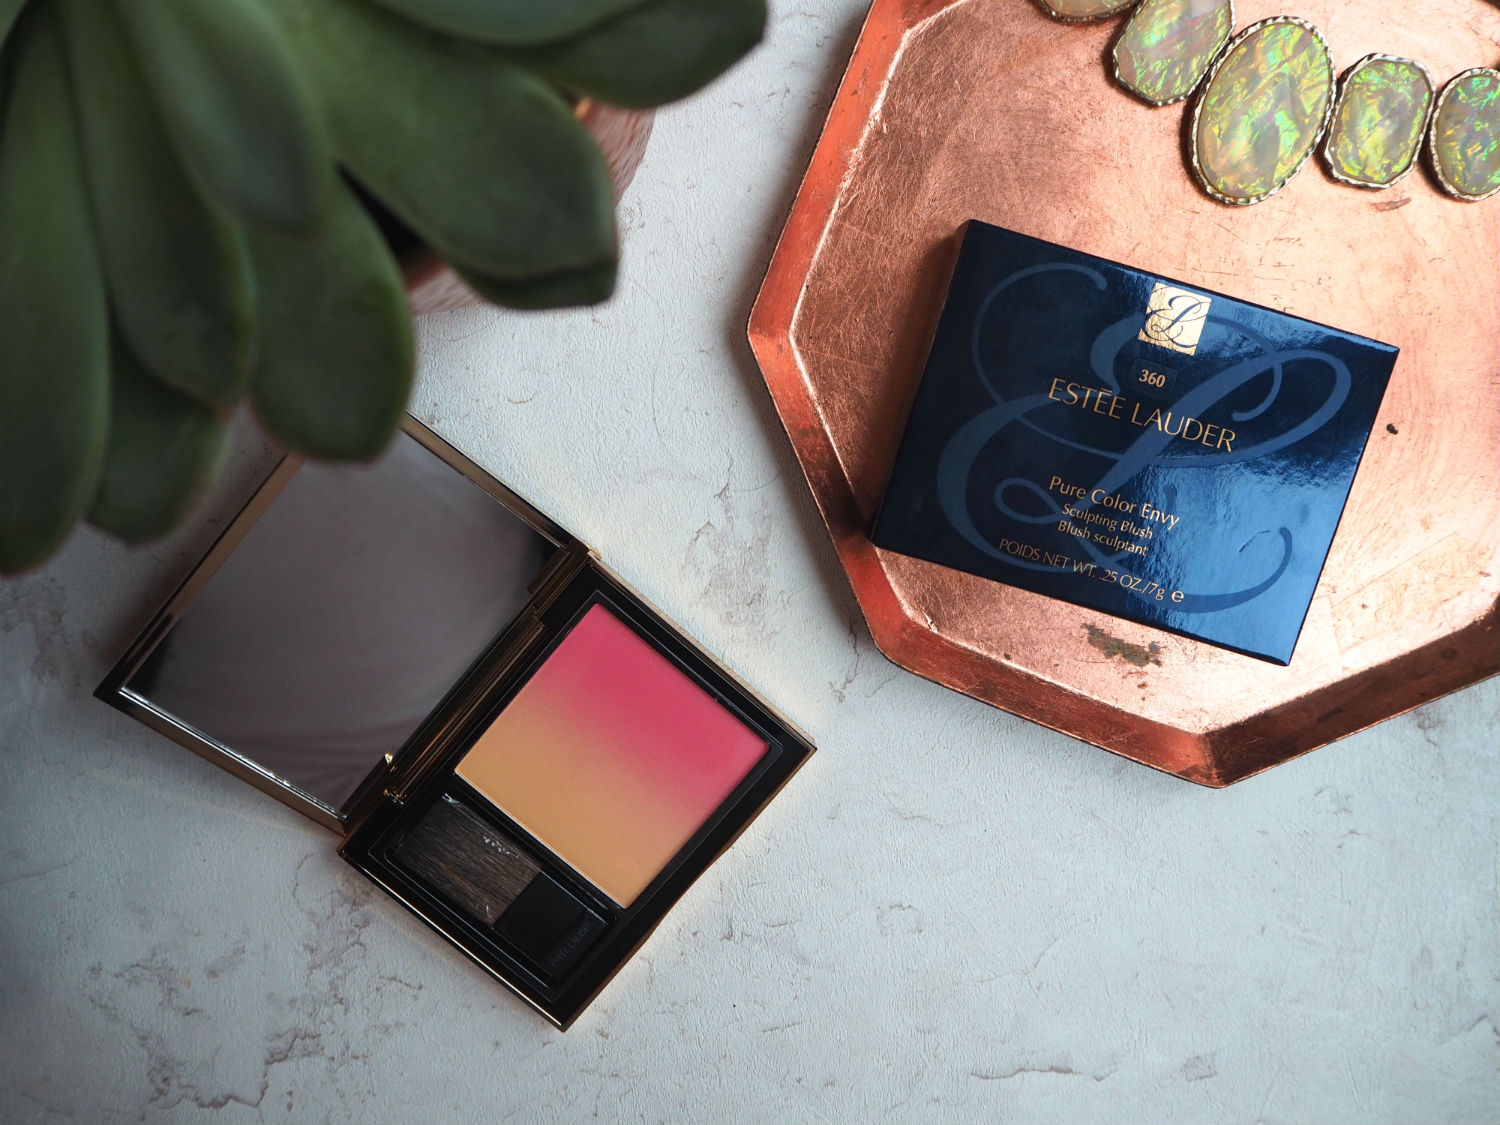 estee-lauder-peach-witty-blush-boots-haul